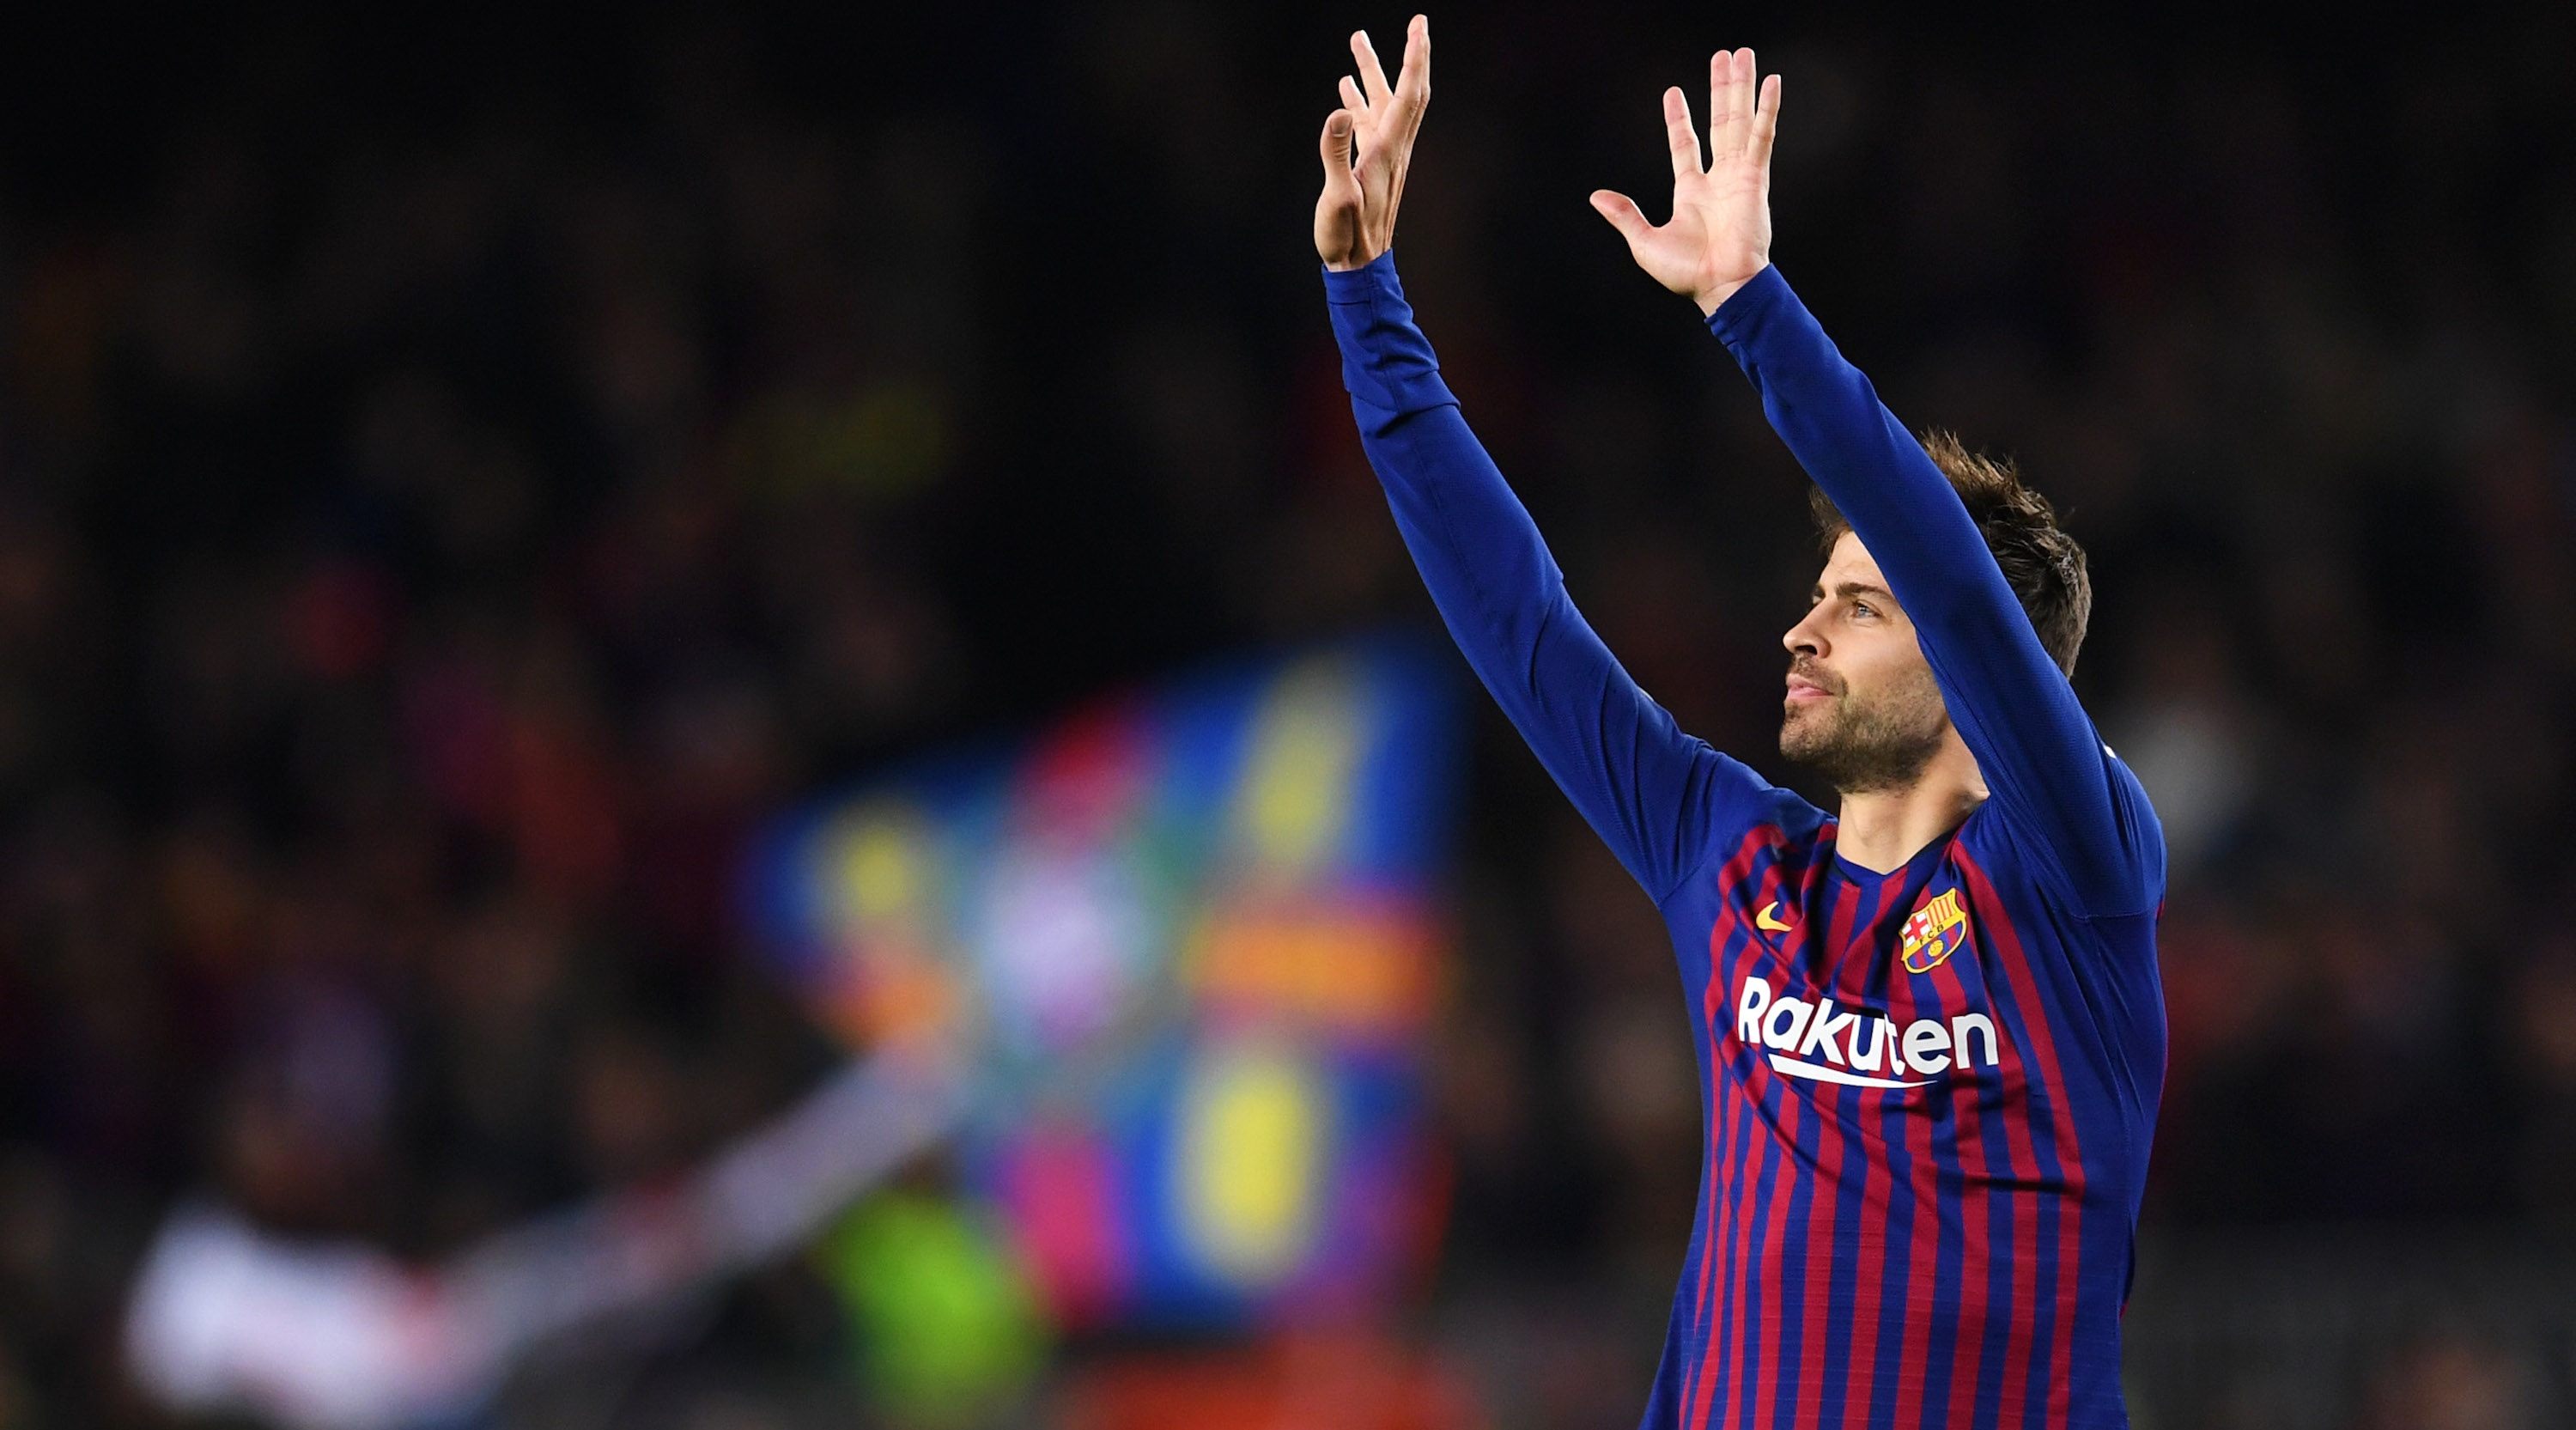 Gerard Pique of Barcelona celebrates after scoring his team's first goal during the La Liga match between FC Barcelona and Villarreal CF at Camp Nou on December 2, 2018 in Barcelona, Spain. (Photo by David Ramos/Getty Images)